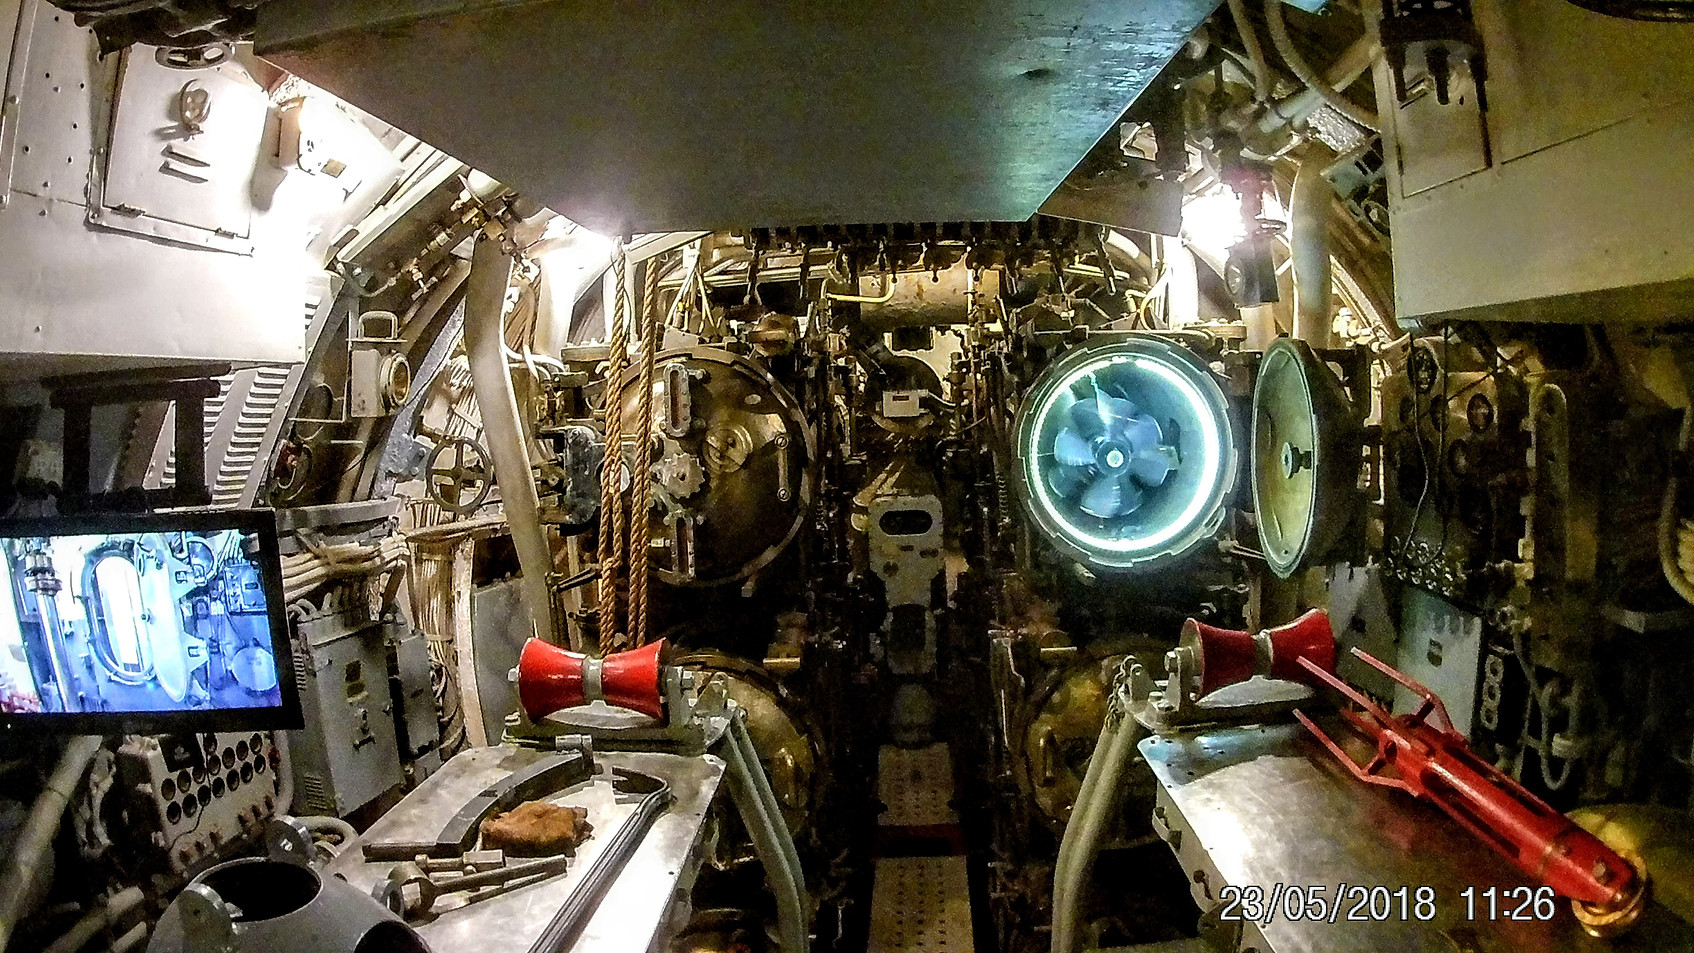 Inside the USS Batfish